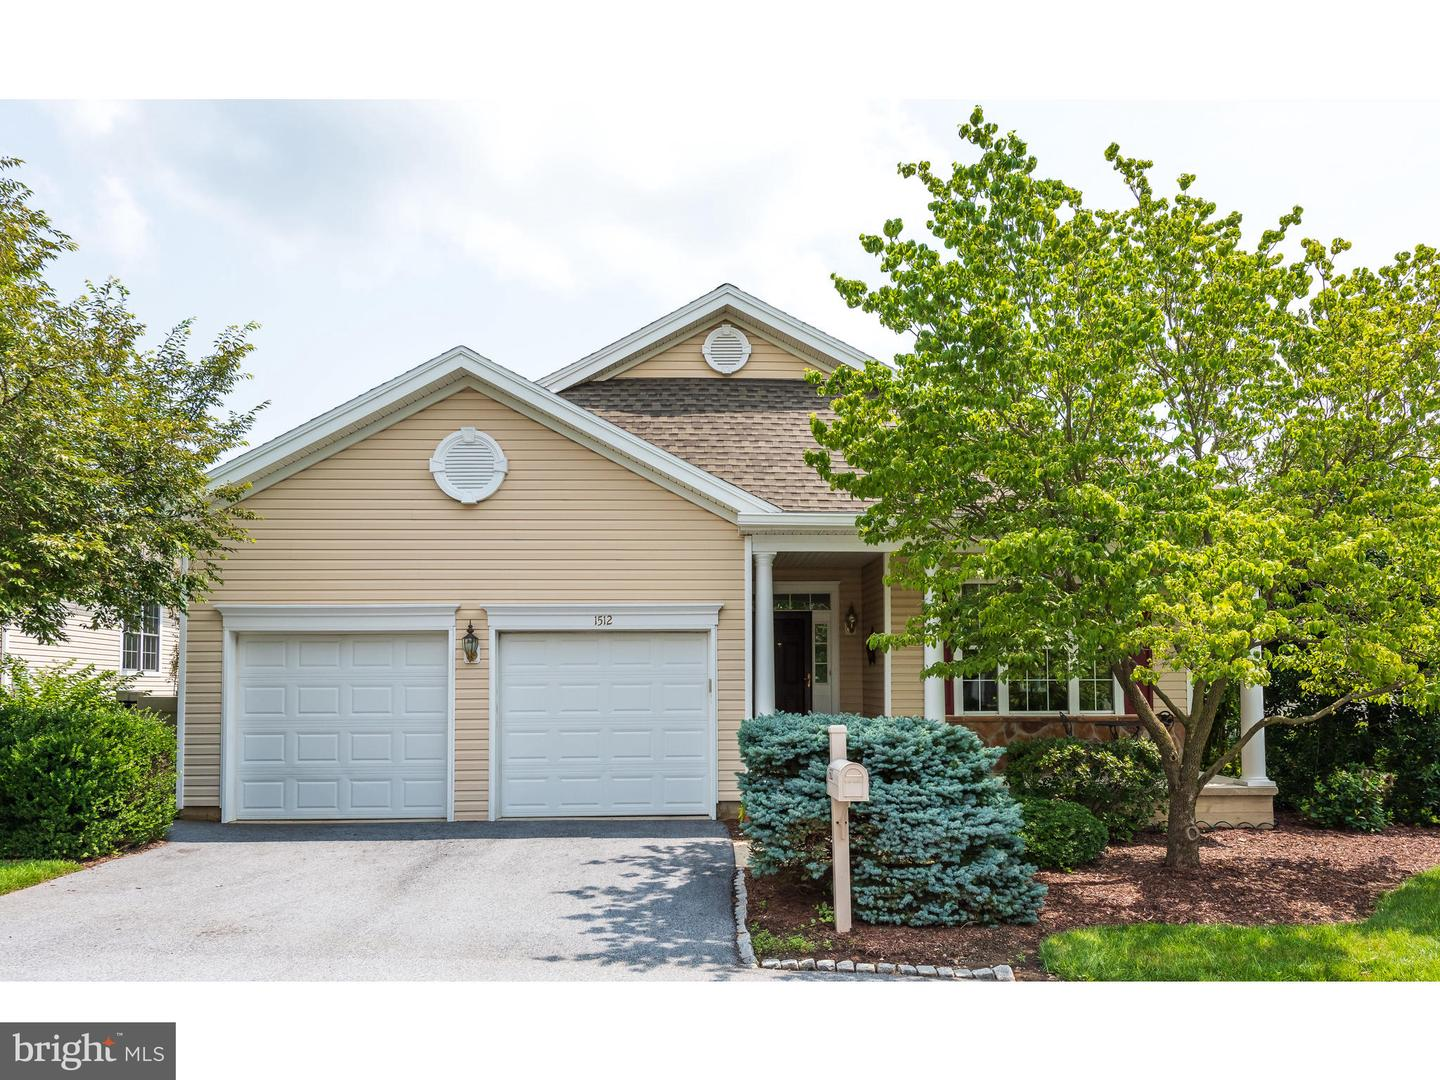 1512 Ulster Way West Chester, PA 19380